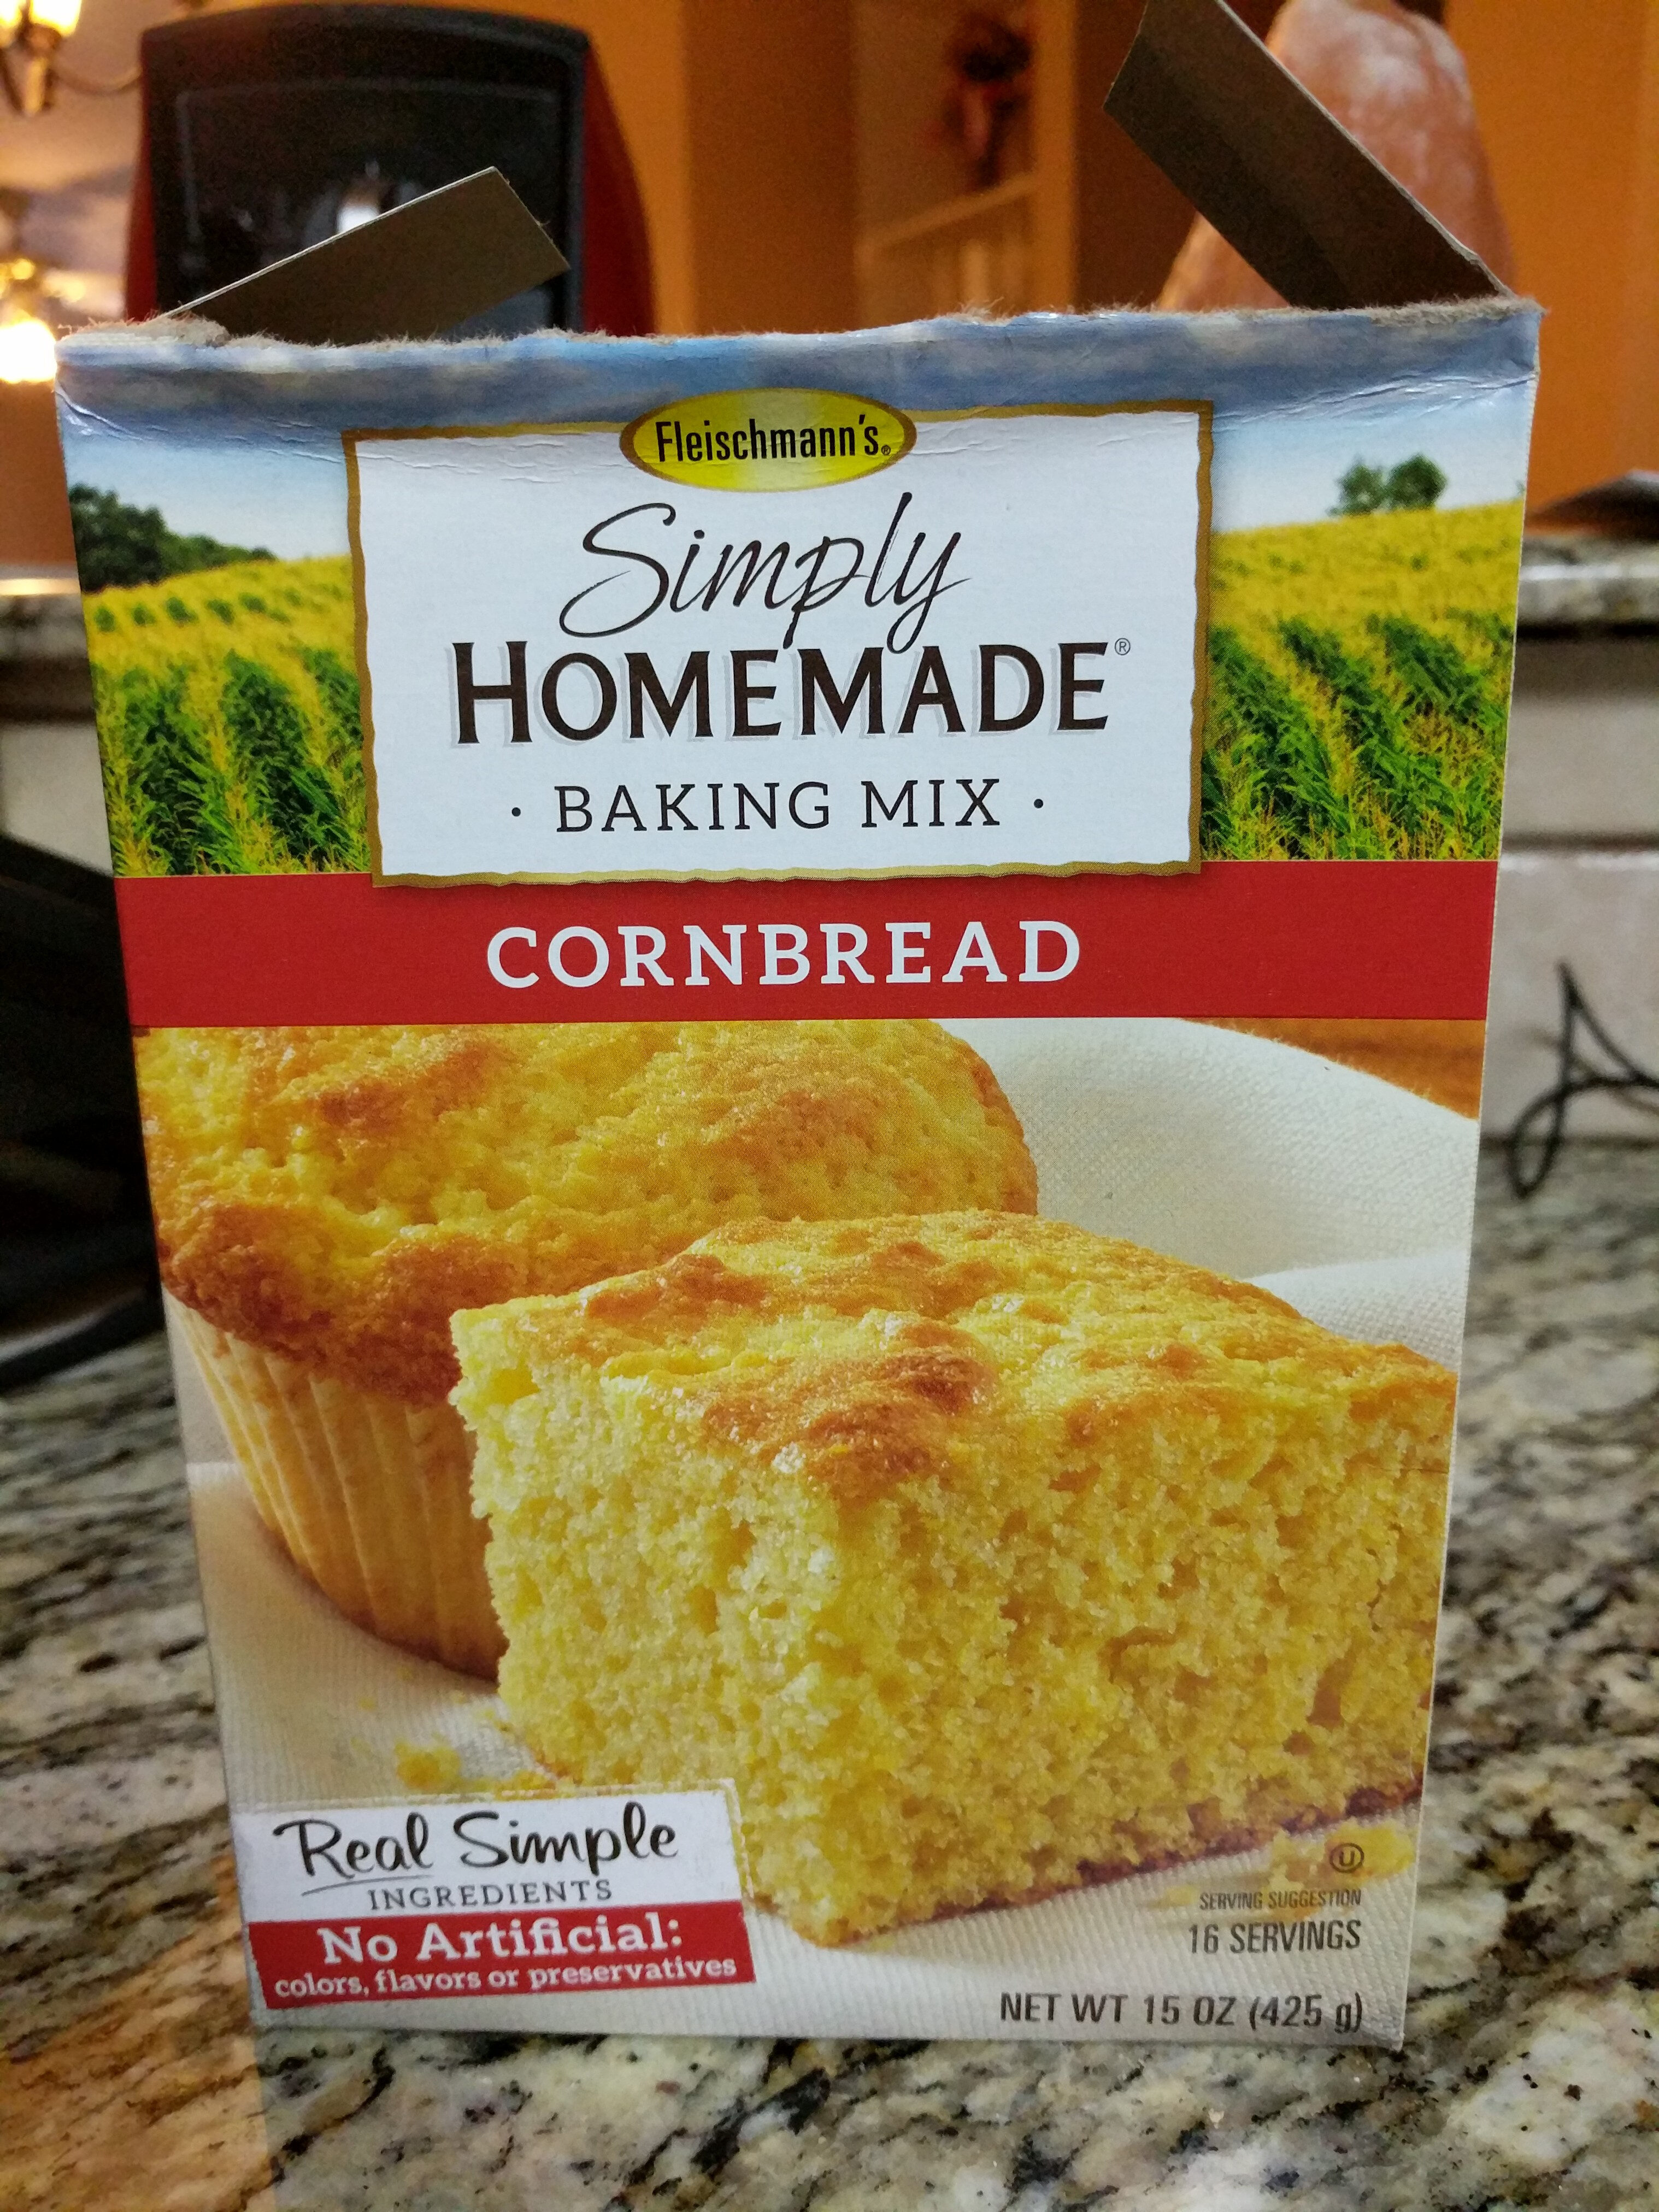 Simply homemade baking mix cornbread - Product - en